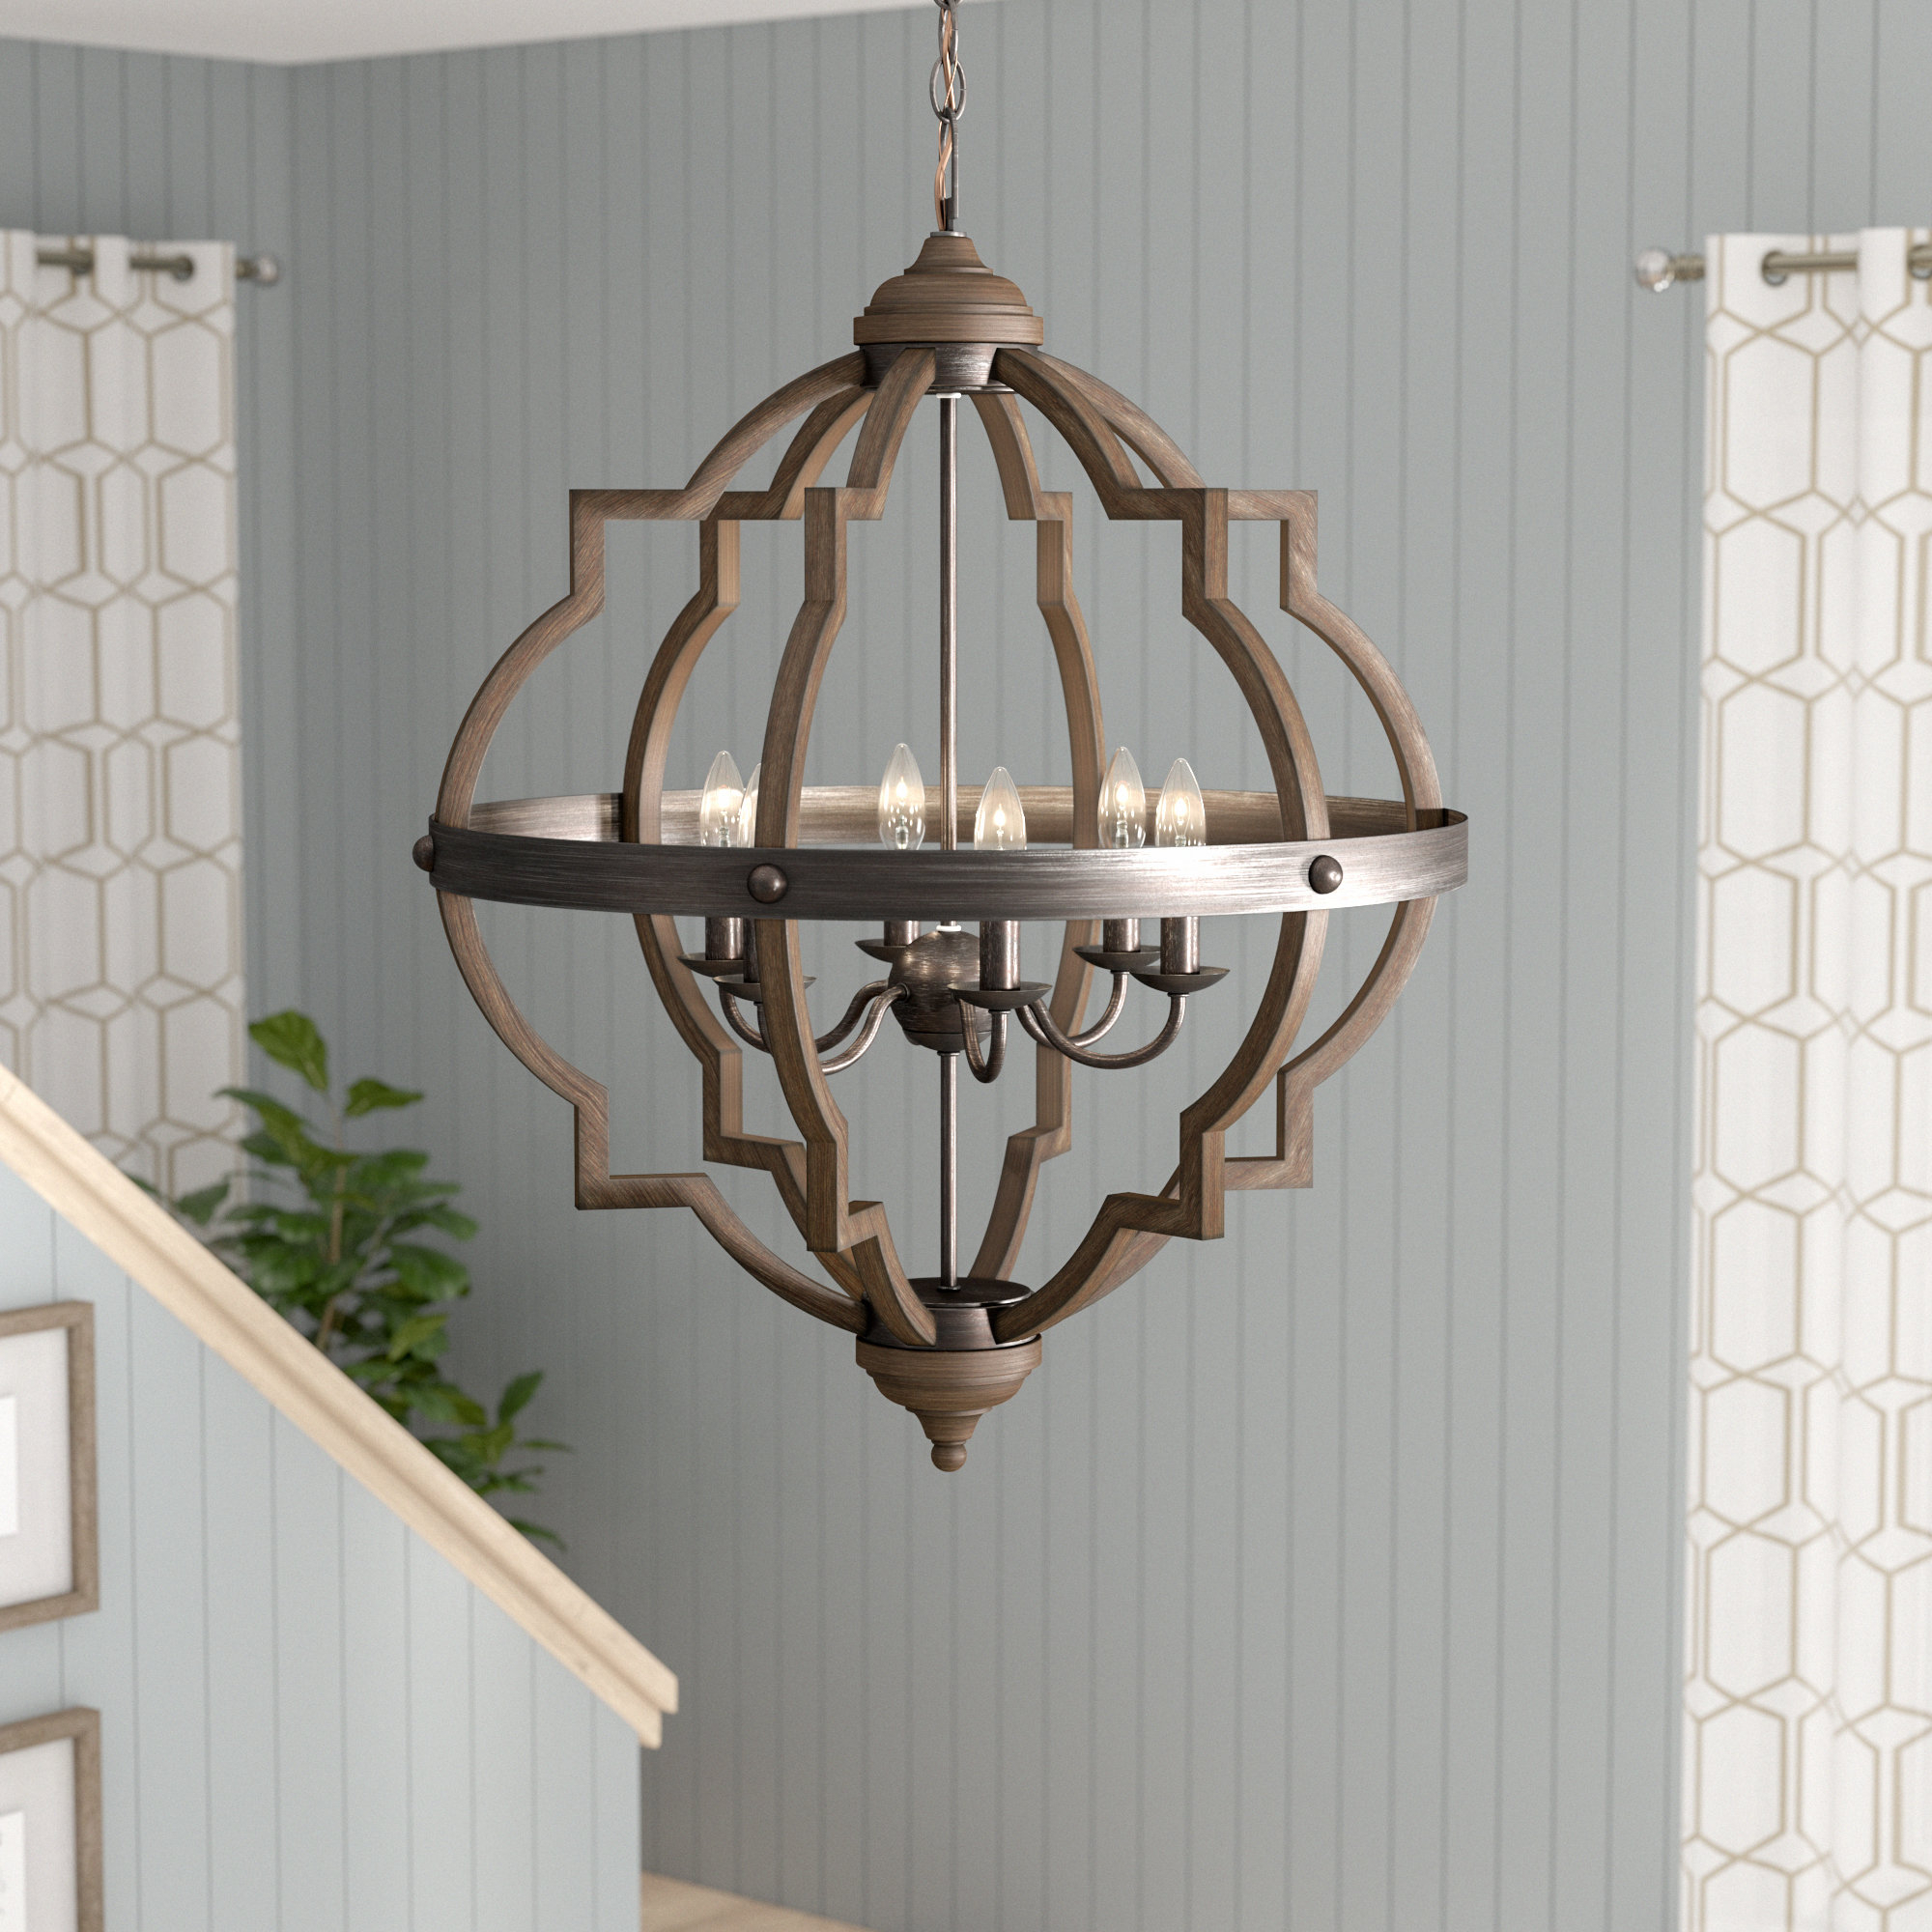 Bennington 6 Light Candle Style Chandelier For Preferred Bennington 4 Light Candle Style Chandeliers (Gallery 5 of 20)